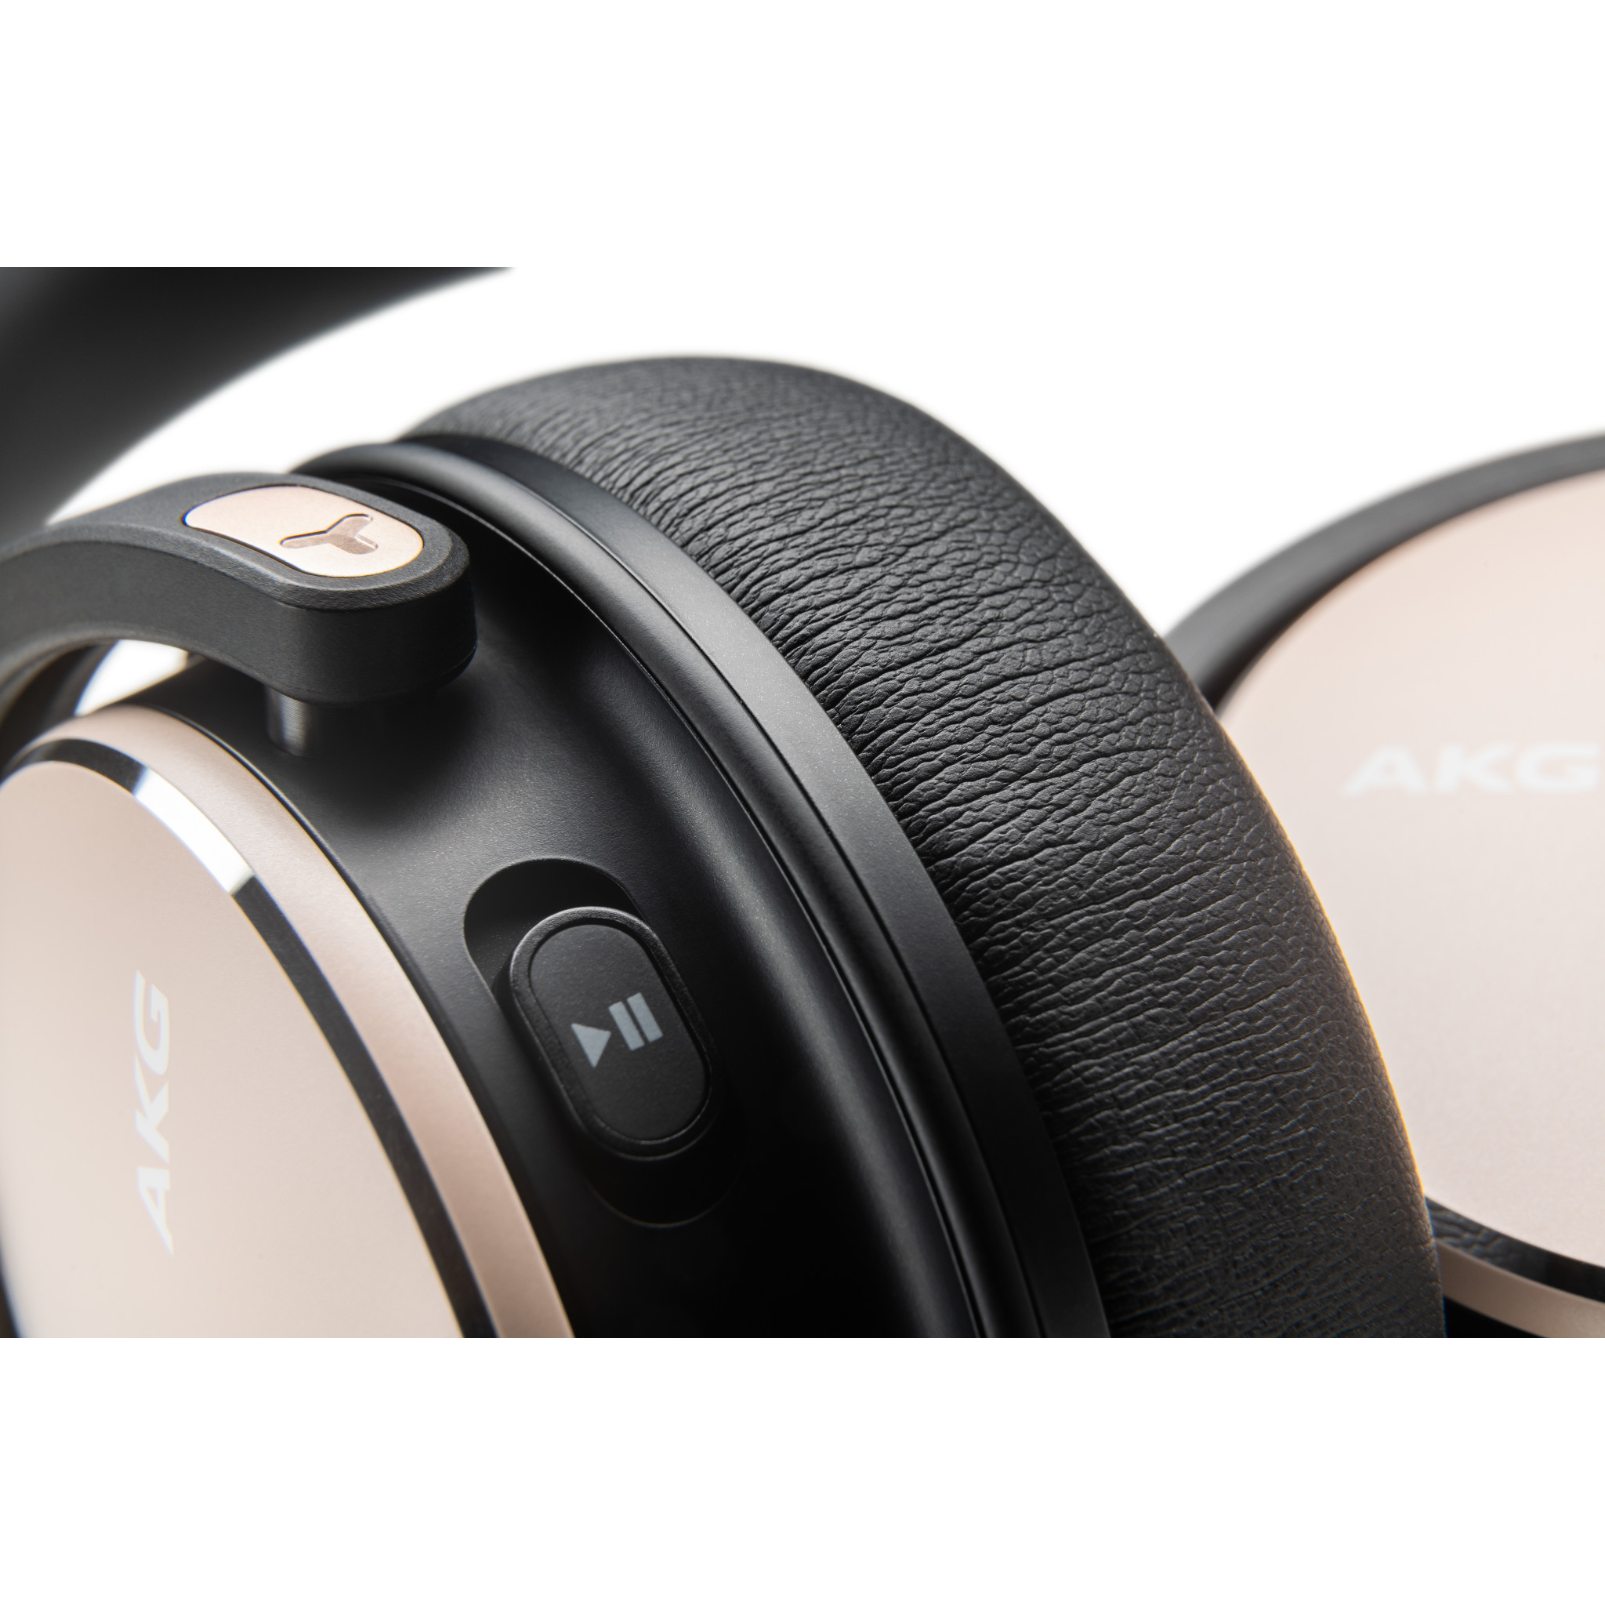 AKG Y600NC WIRELESS - Beige - Wireless over-ear NC headphones - Detailshot 1